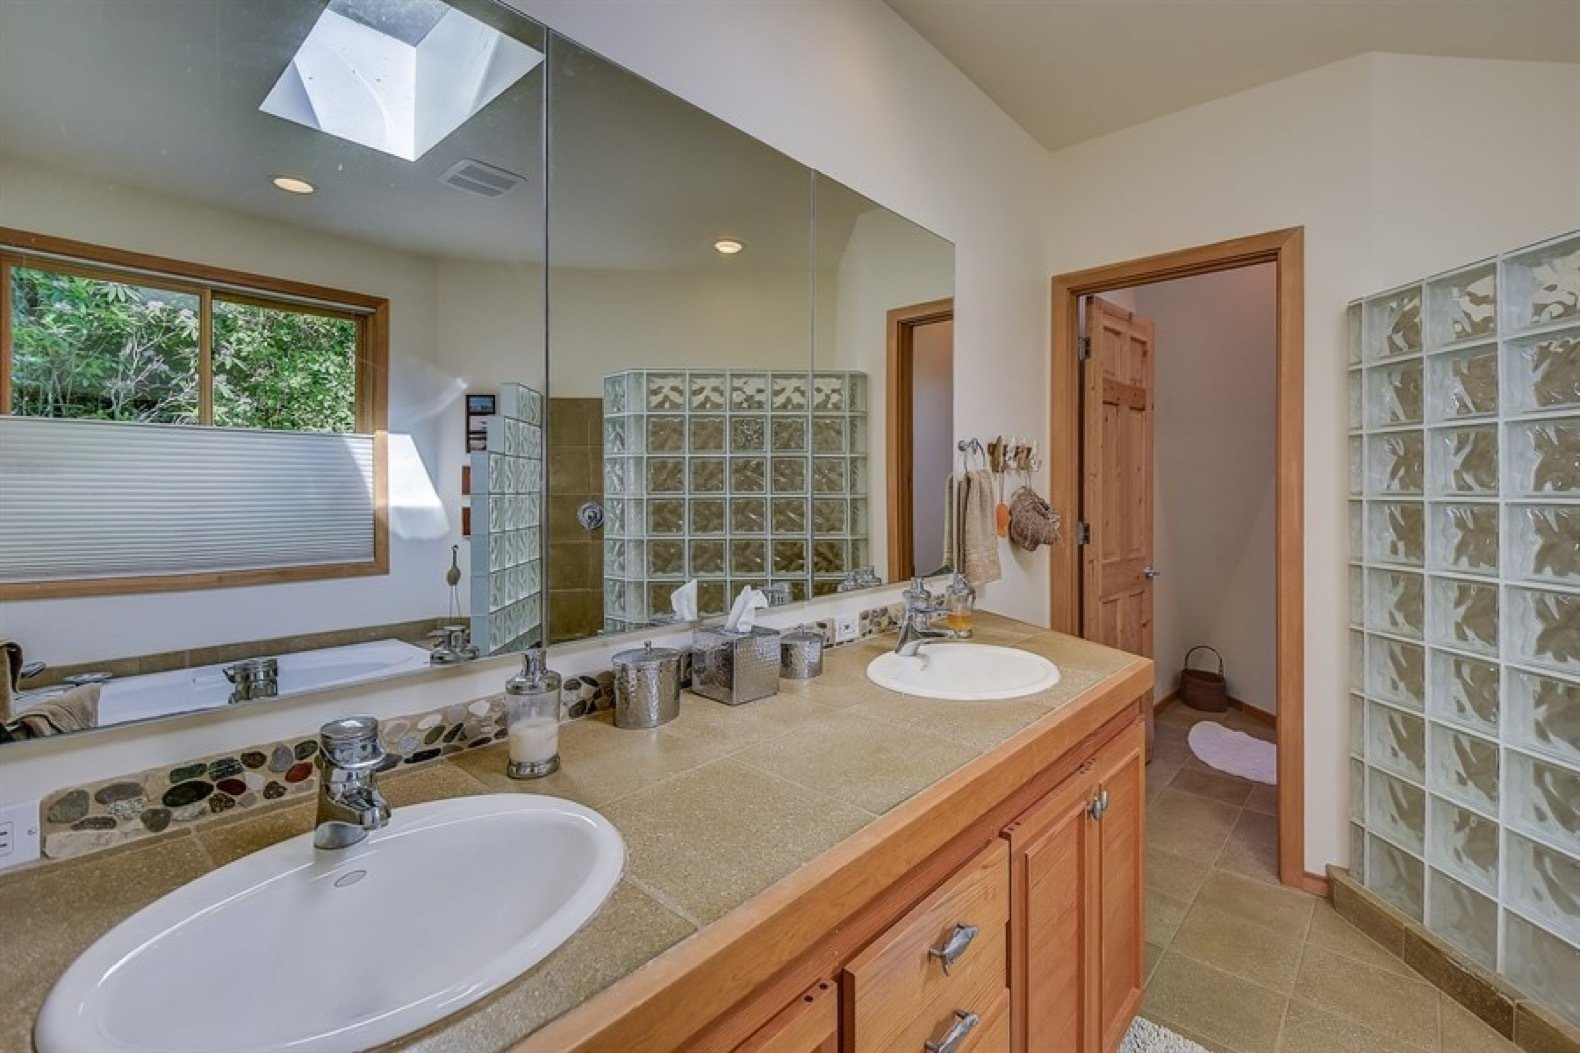 Bath Room, Recessed Lighting, Ceramic Tile Floor, Tile Counter, Enclosed Shower, and Drop In Sink A peek inside the master bathroom with a double vanity and glass block shower.    Photo 7 of 11 in A Tetrahedron Cabin With Stellar Seaside Views Is Listed For $695K